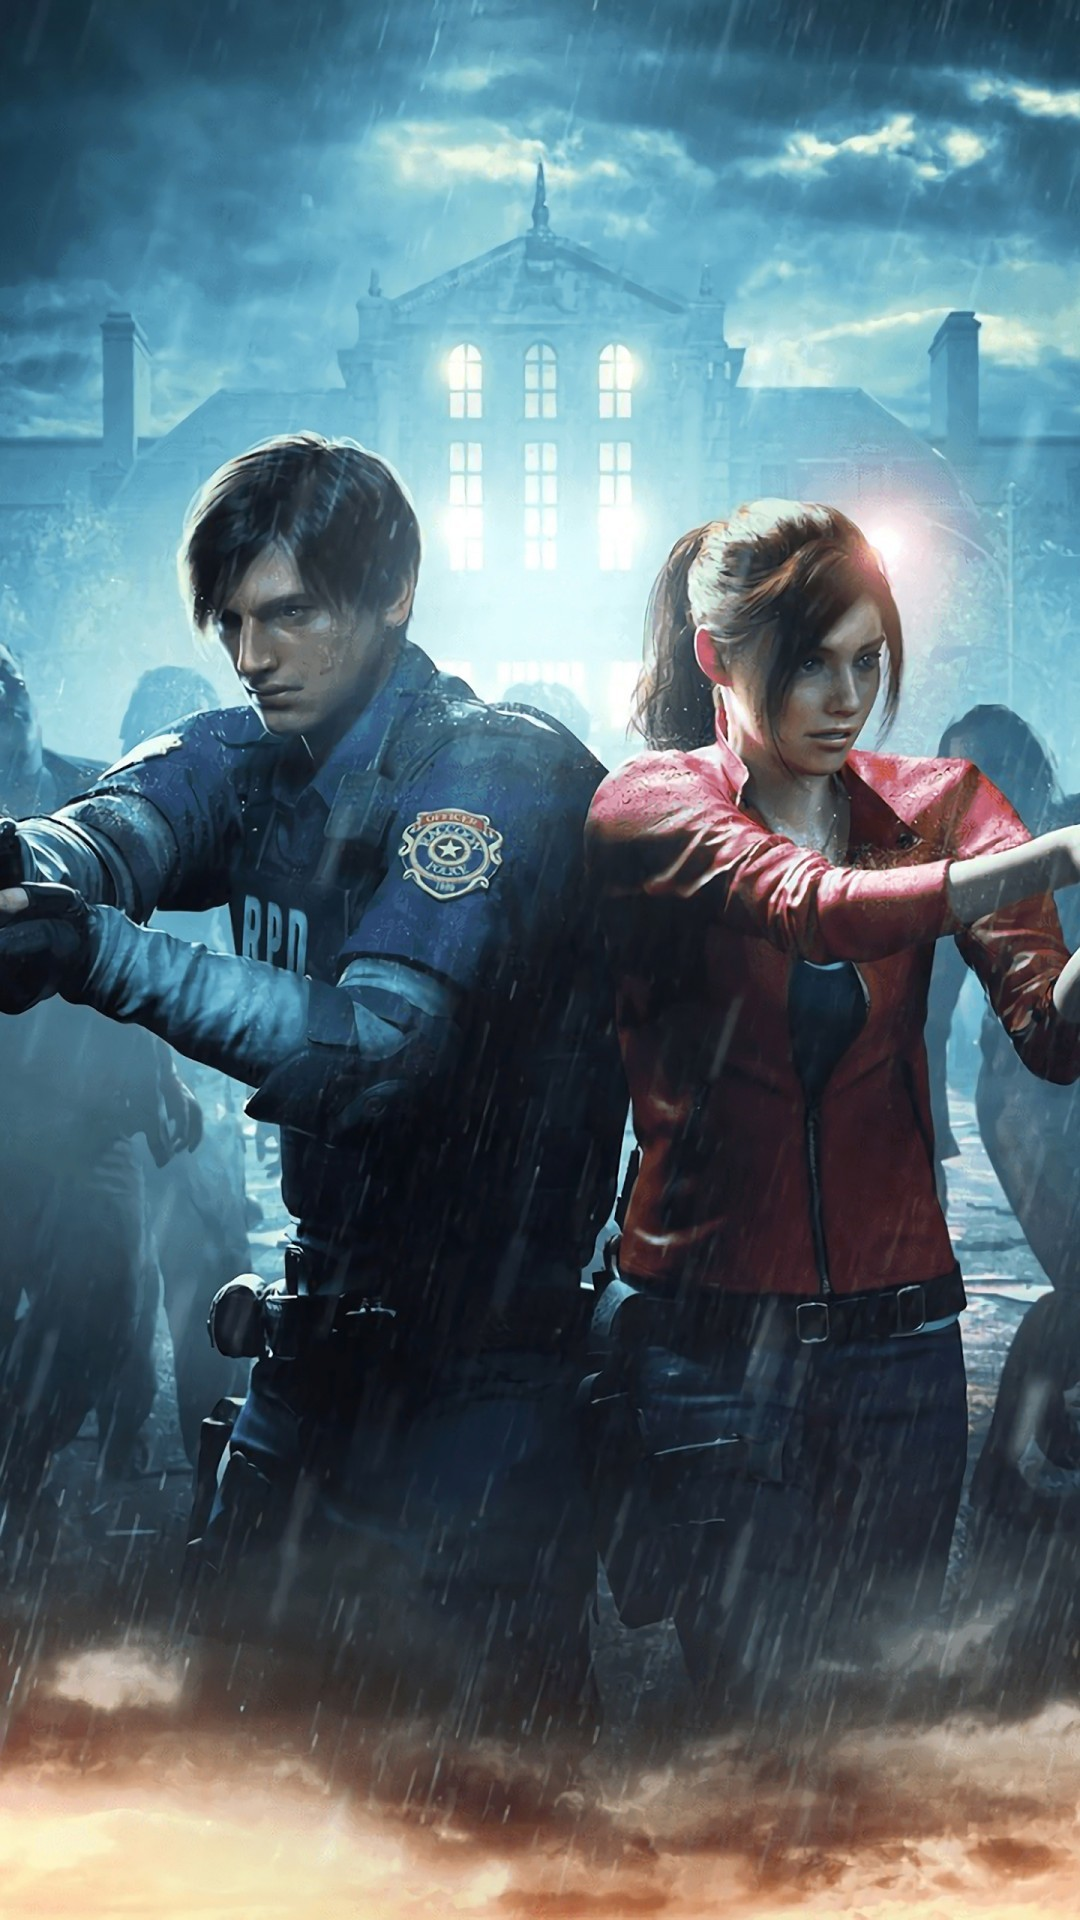 Free Resident Evil 2 phone wallpaper by really